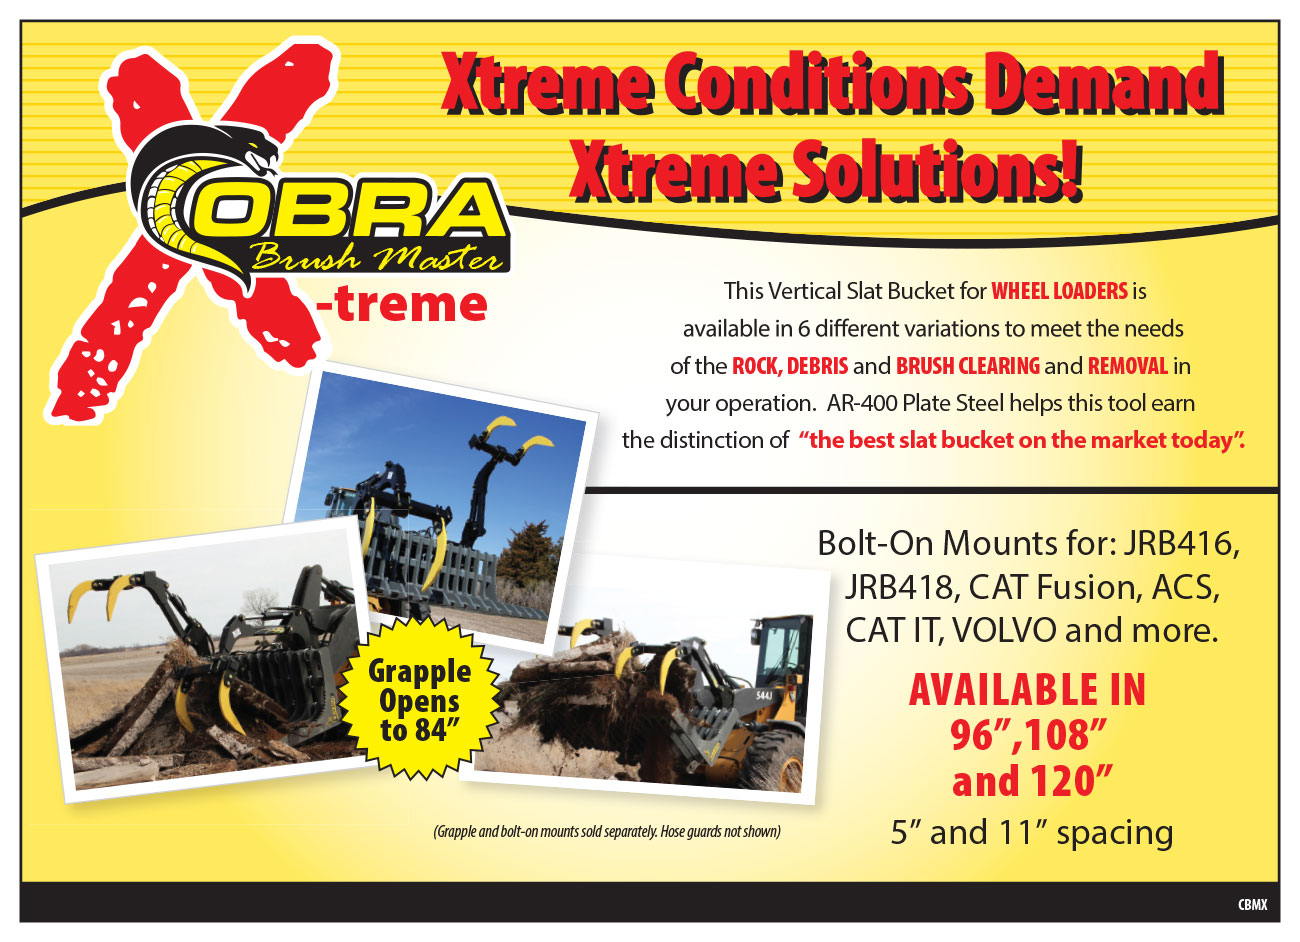 Cobra Brush Master Xtreme